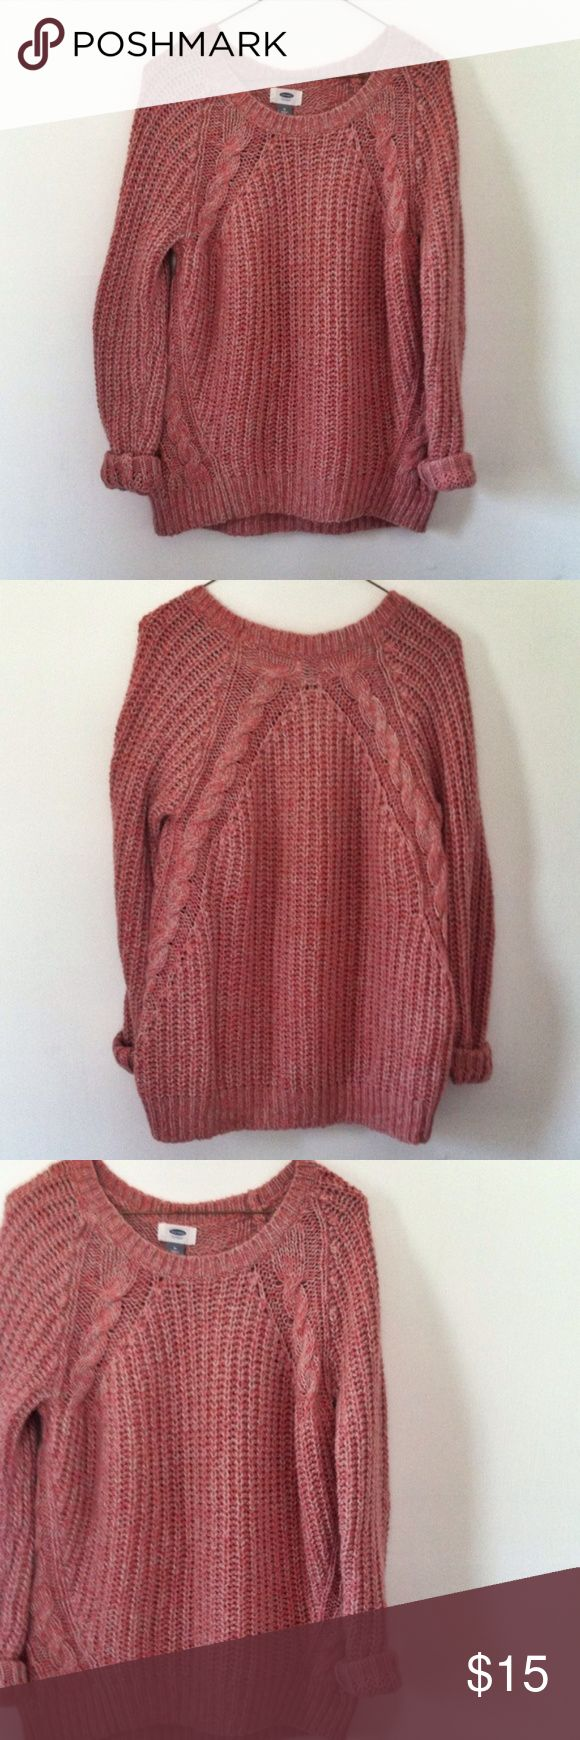 Old Navy Sweater Shirt Top Medium Excellent used condition. Worn a handful of times. Long sleeve knit sweater. Color: pink. Size: Medium. Brand: Old Navy. No trades. Free gift with any purchase & 15% off of all bundles. Old Navy Sweaters